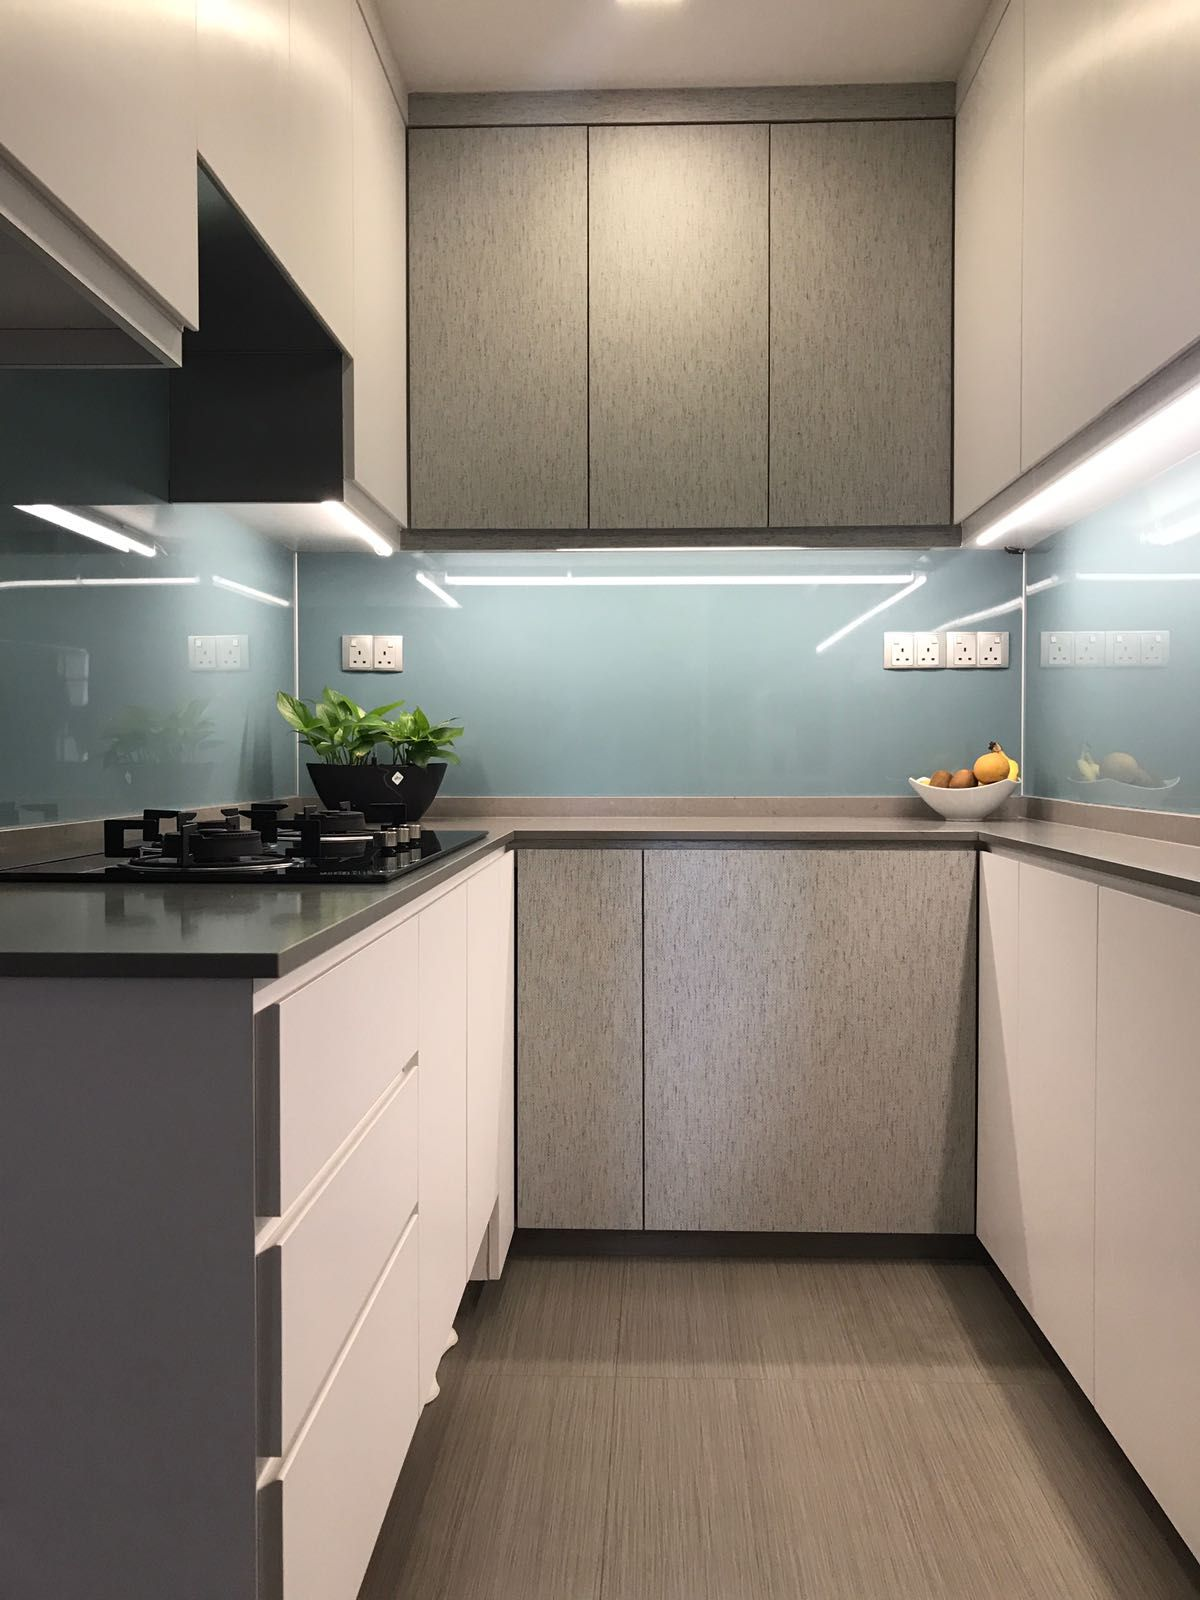 one of the very first kitchens with installed alusplash in singapore singapore homedecor on kitchen ideas singapore id=74562